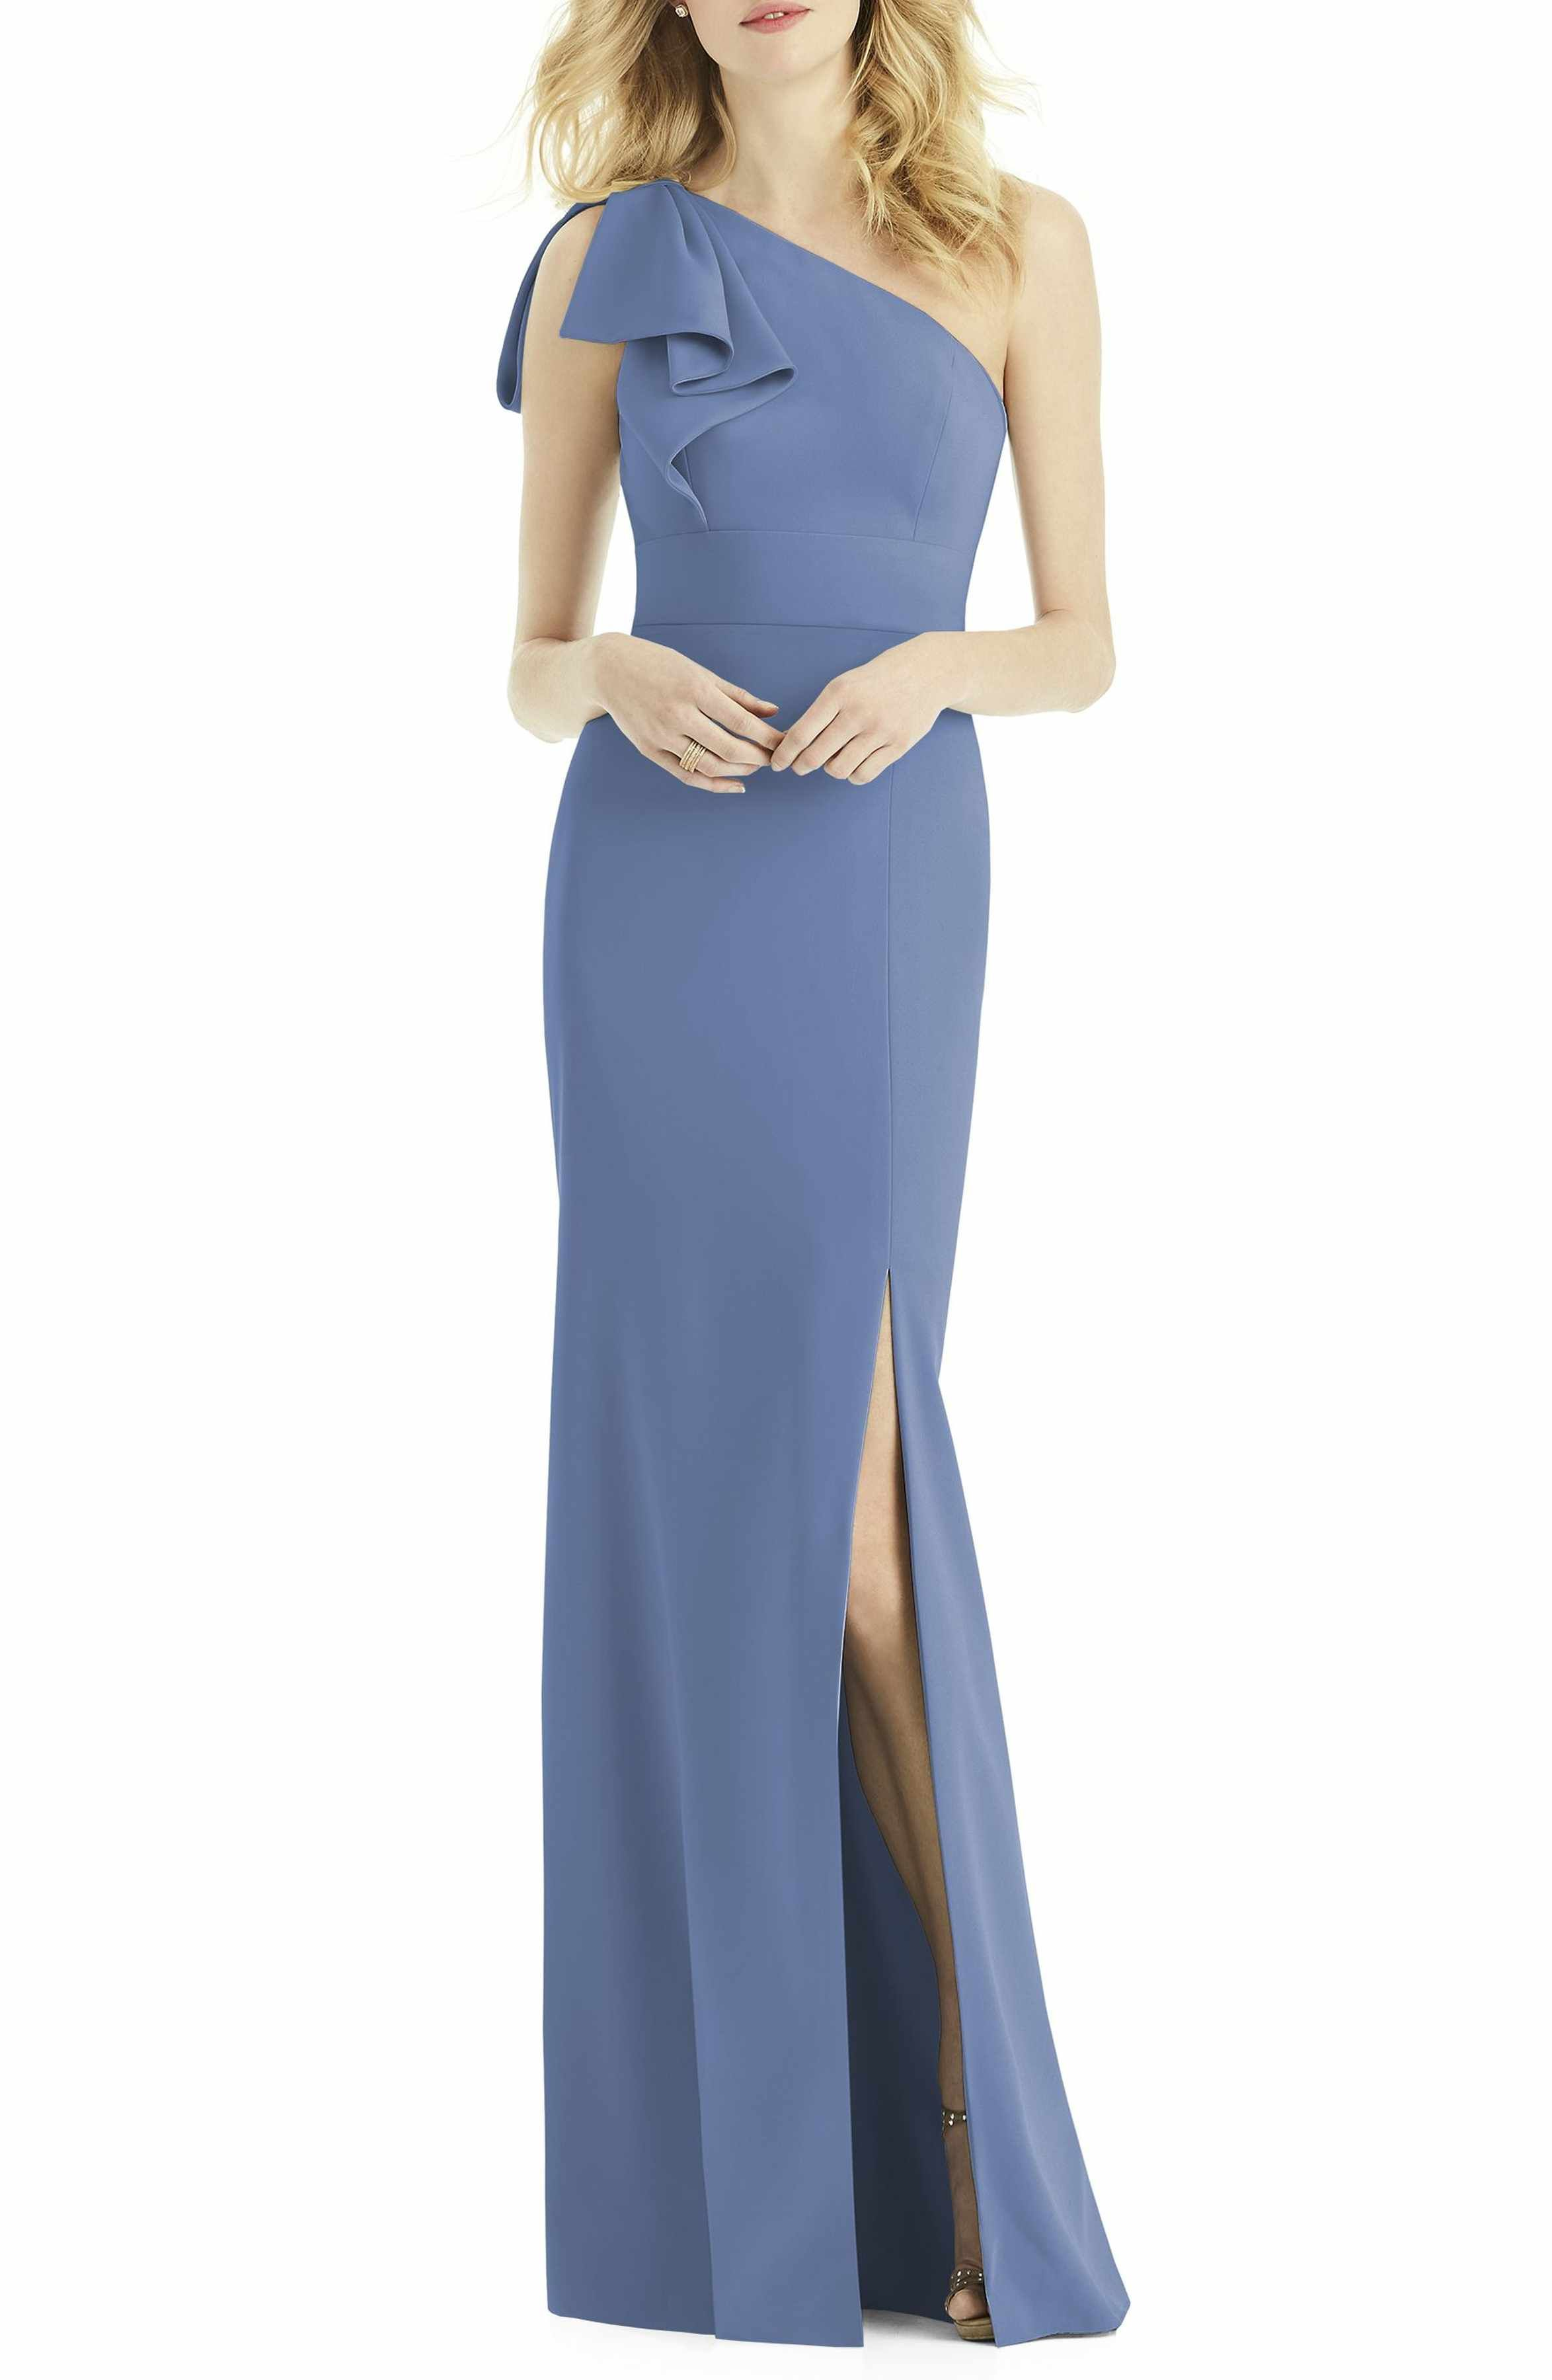 97c4fa9250be After Six Bow One-Shoulder Gown in Larkspur | Bridesmaid Ideas | One ...